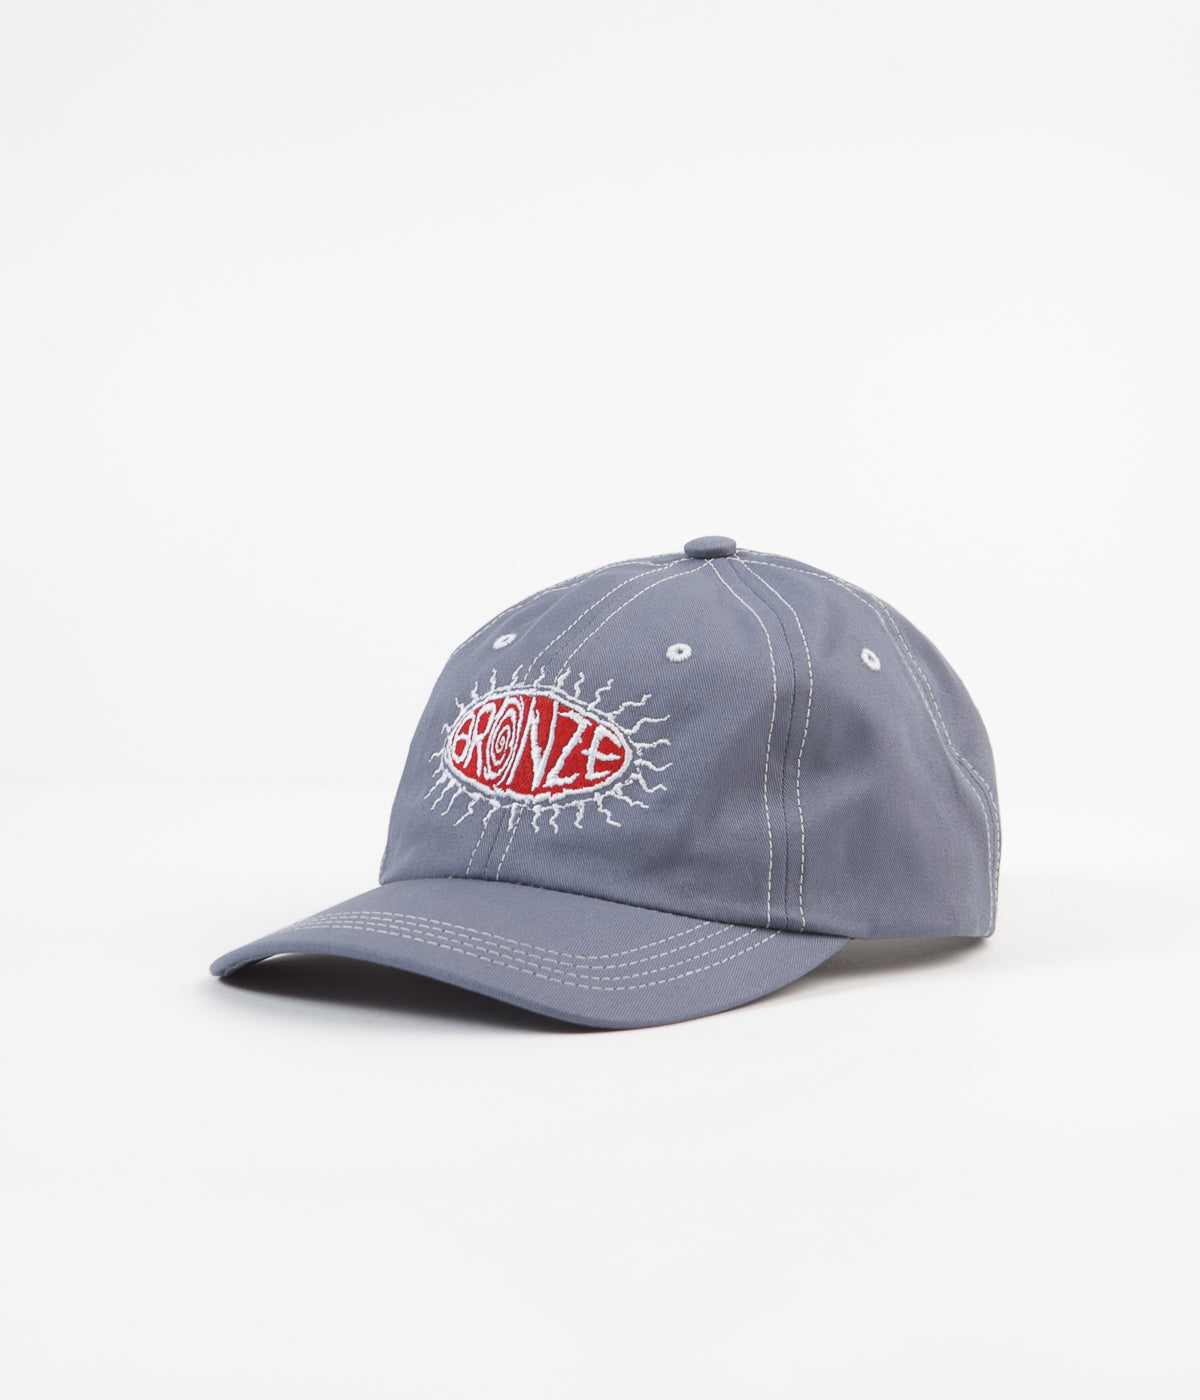 Bronze 56k Surfer Hat - Cool River